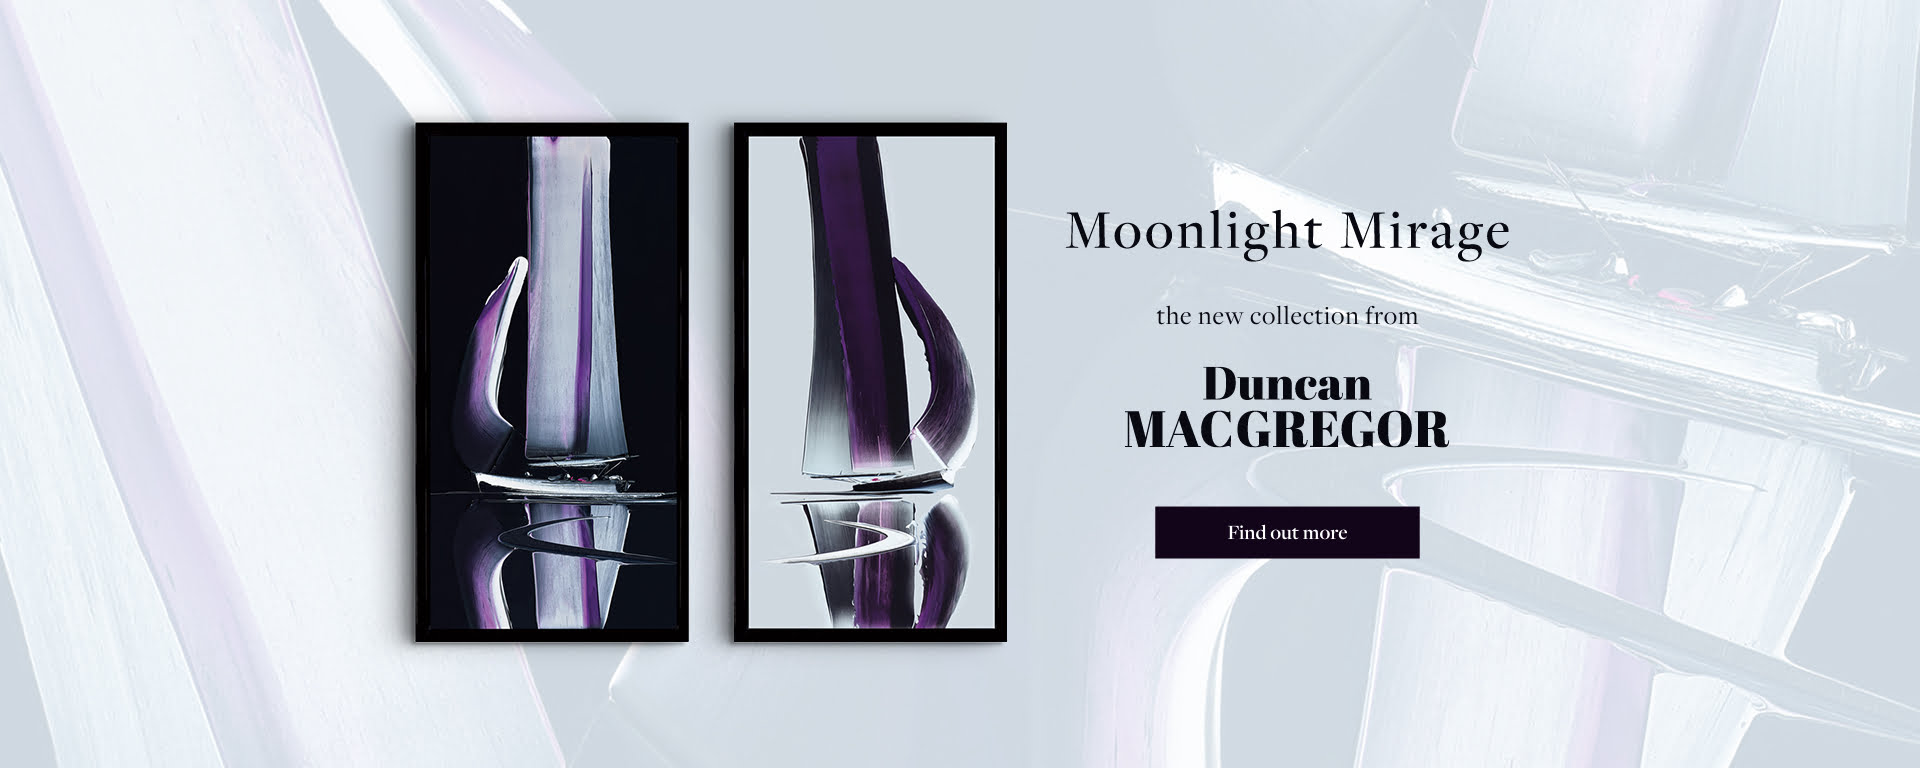 The New and Anticipated Limited Edition Release by Duncan MacGregor!